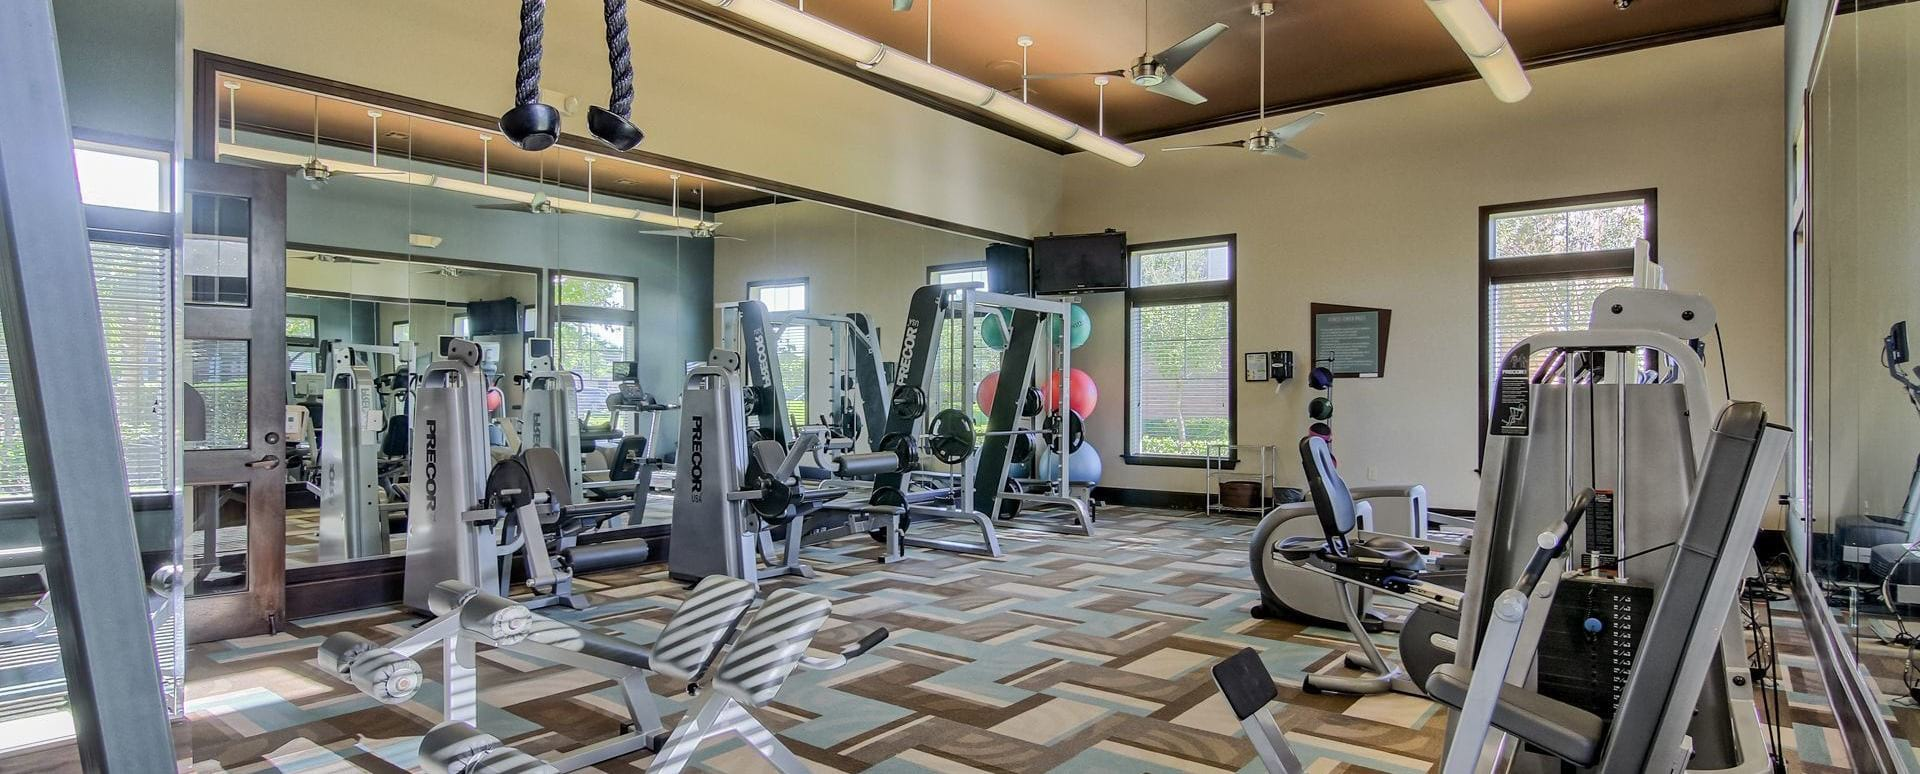 Apartments Gym at Cortland League City